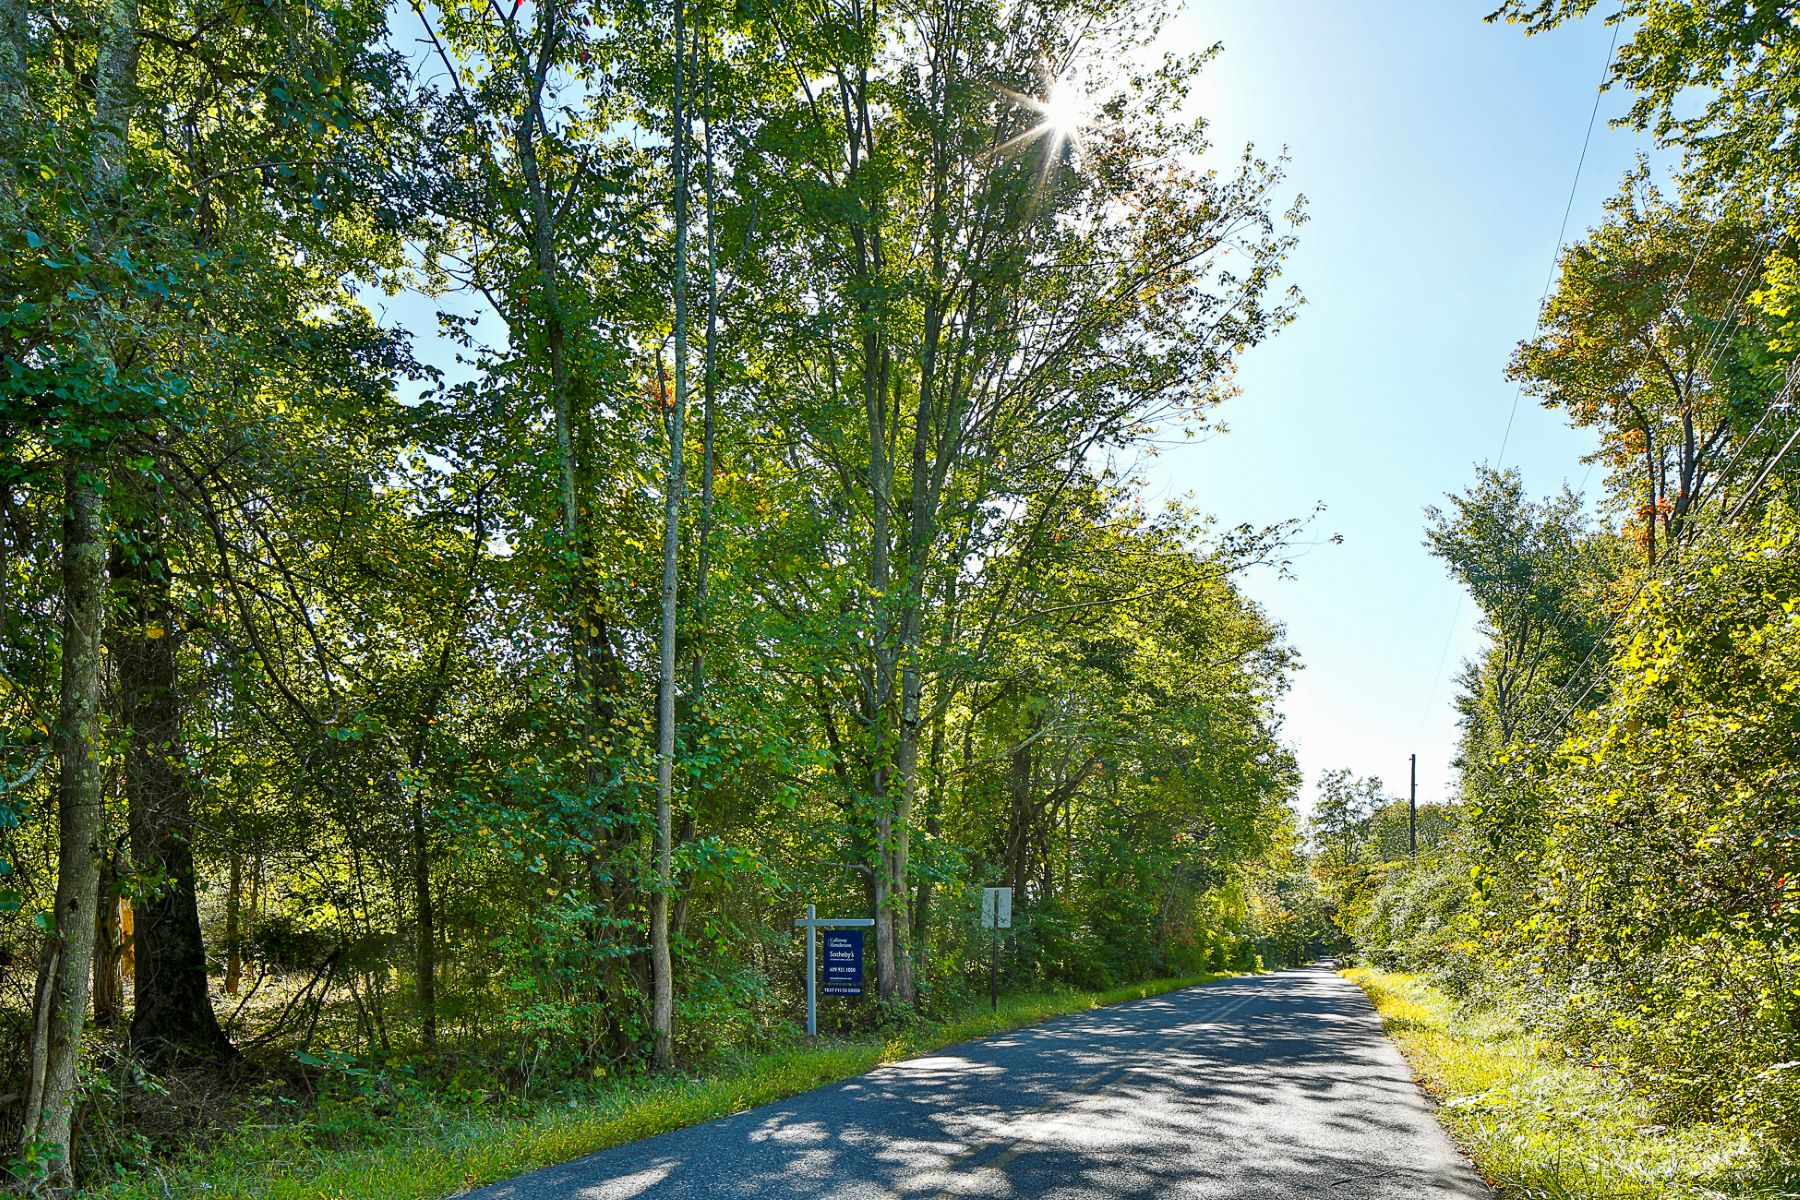 Additional photo for property listing at Just Waiting For Your House Plans - West Amwell Township 145 West Rock Road, Lambertville, New Jersey 08530 United States